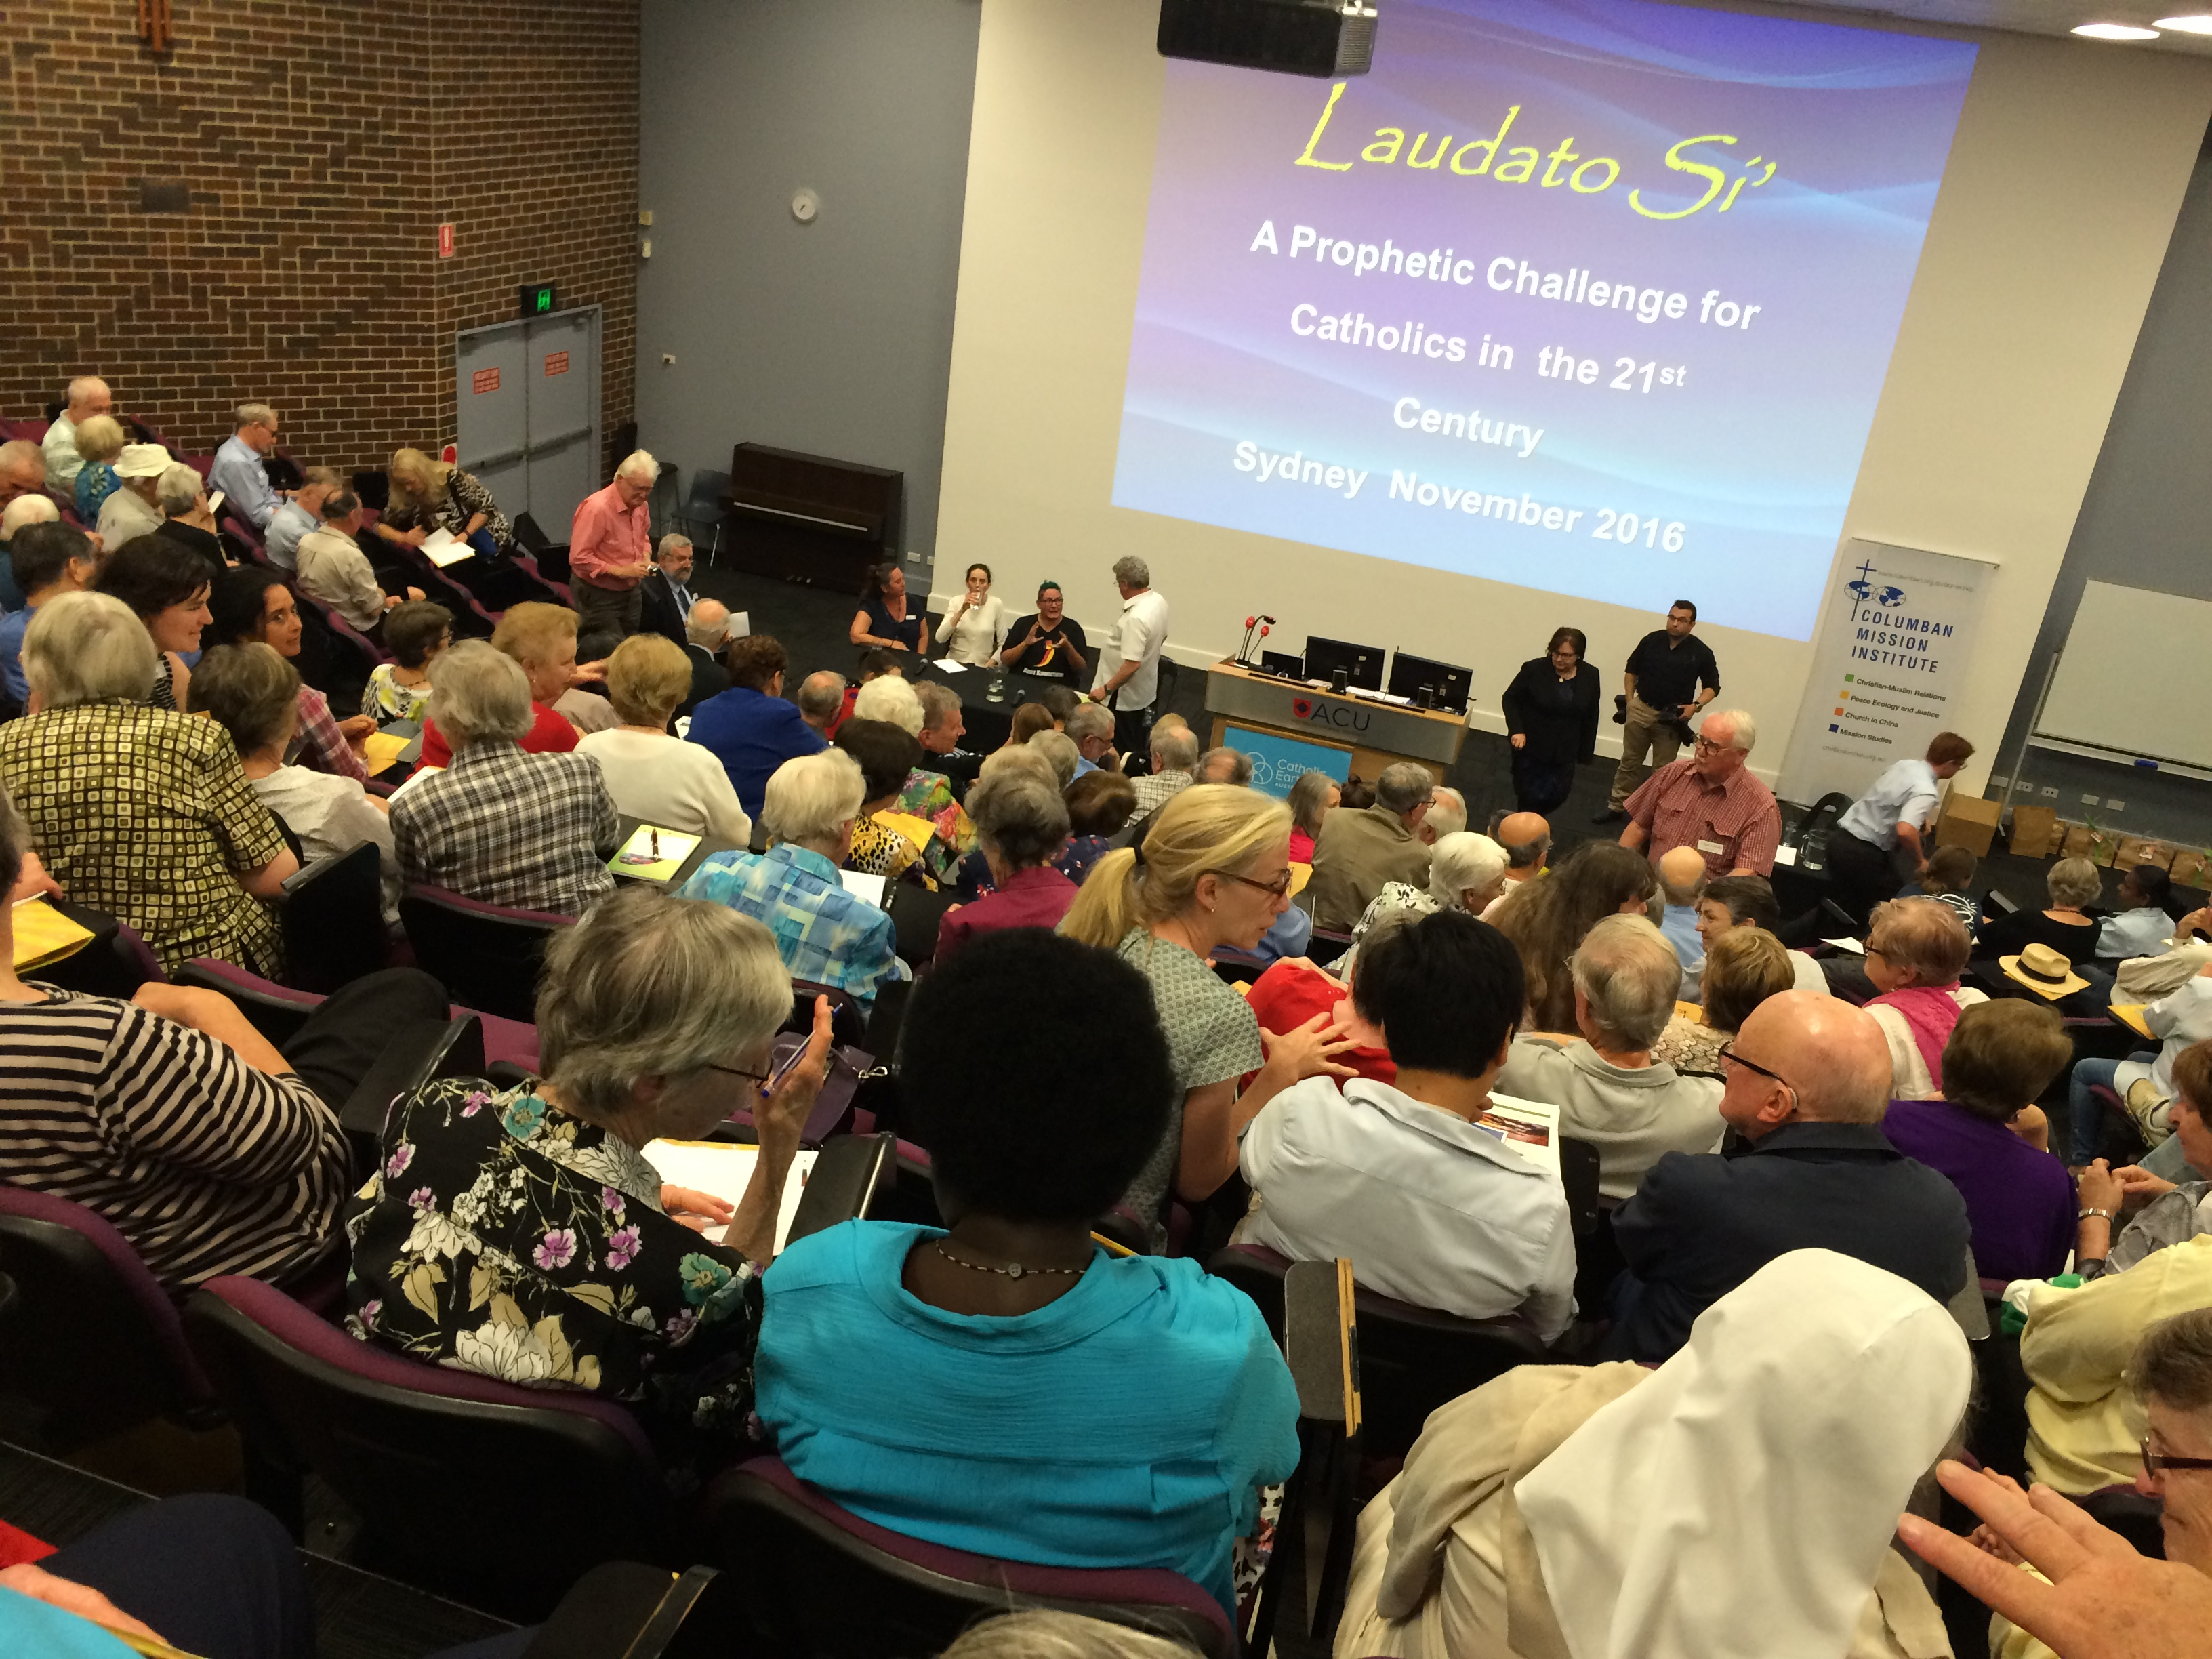 'Bringing Laudato Si' to Life' event at ACU